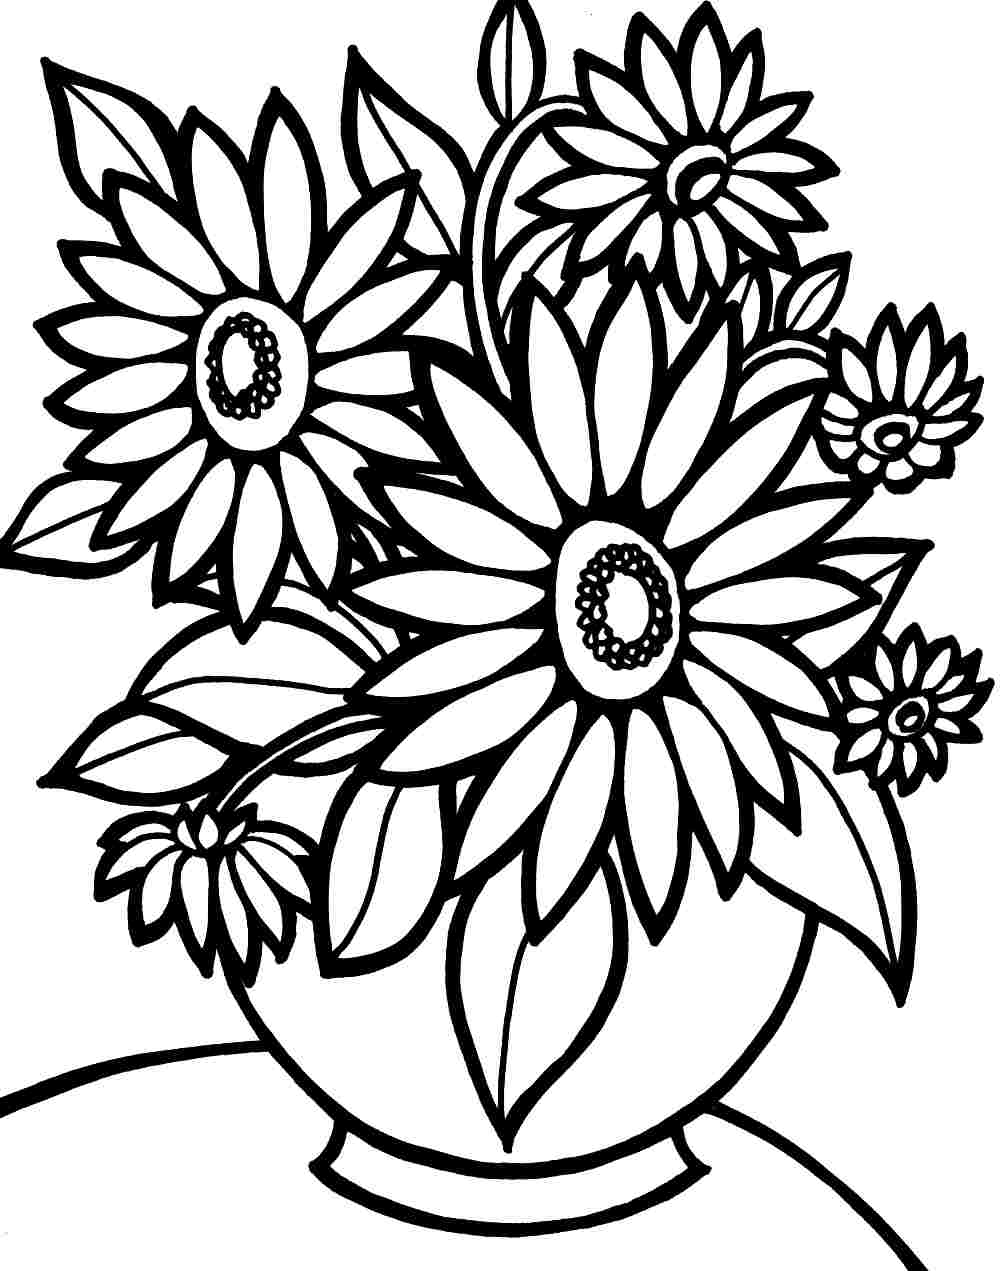 Simple Flower Coloring Page Pages Of Within Draw Easy Flowers To Easy Flower Color Printable Flower Coloring Pages Easy Coloring Pages Flower Coloring Sheets